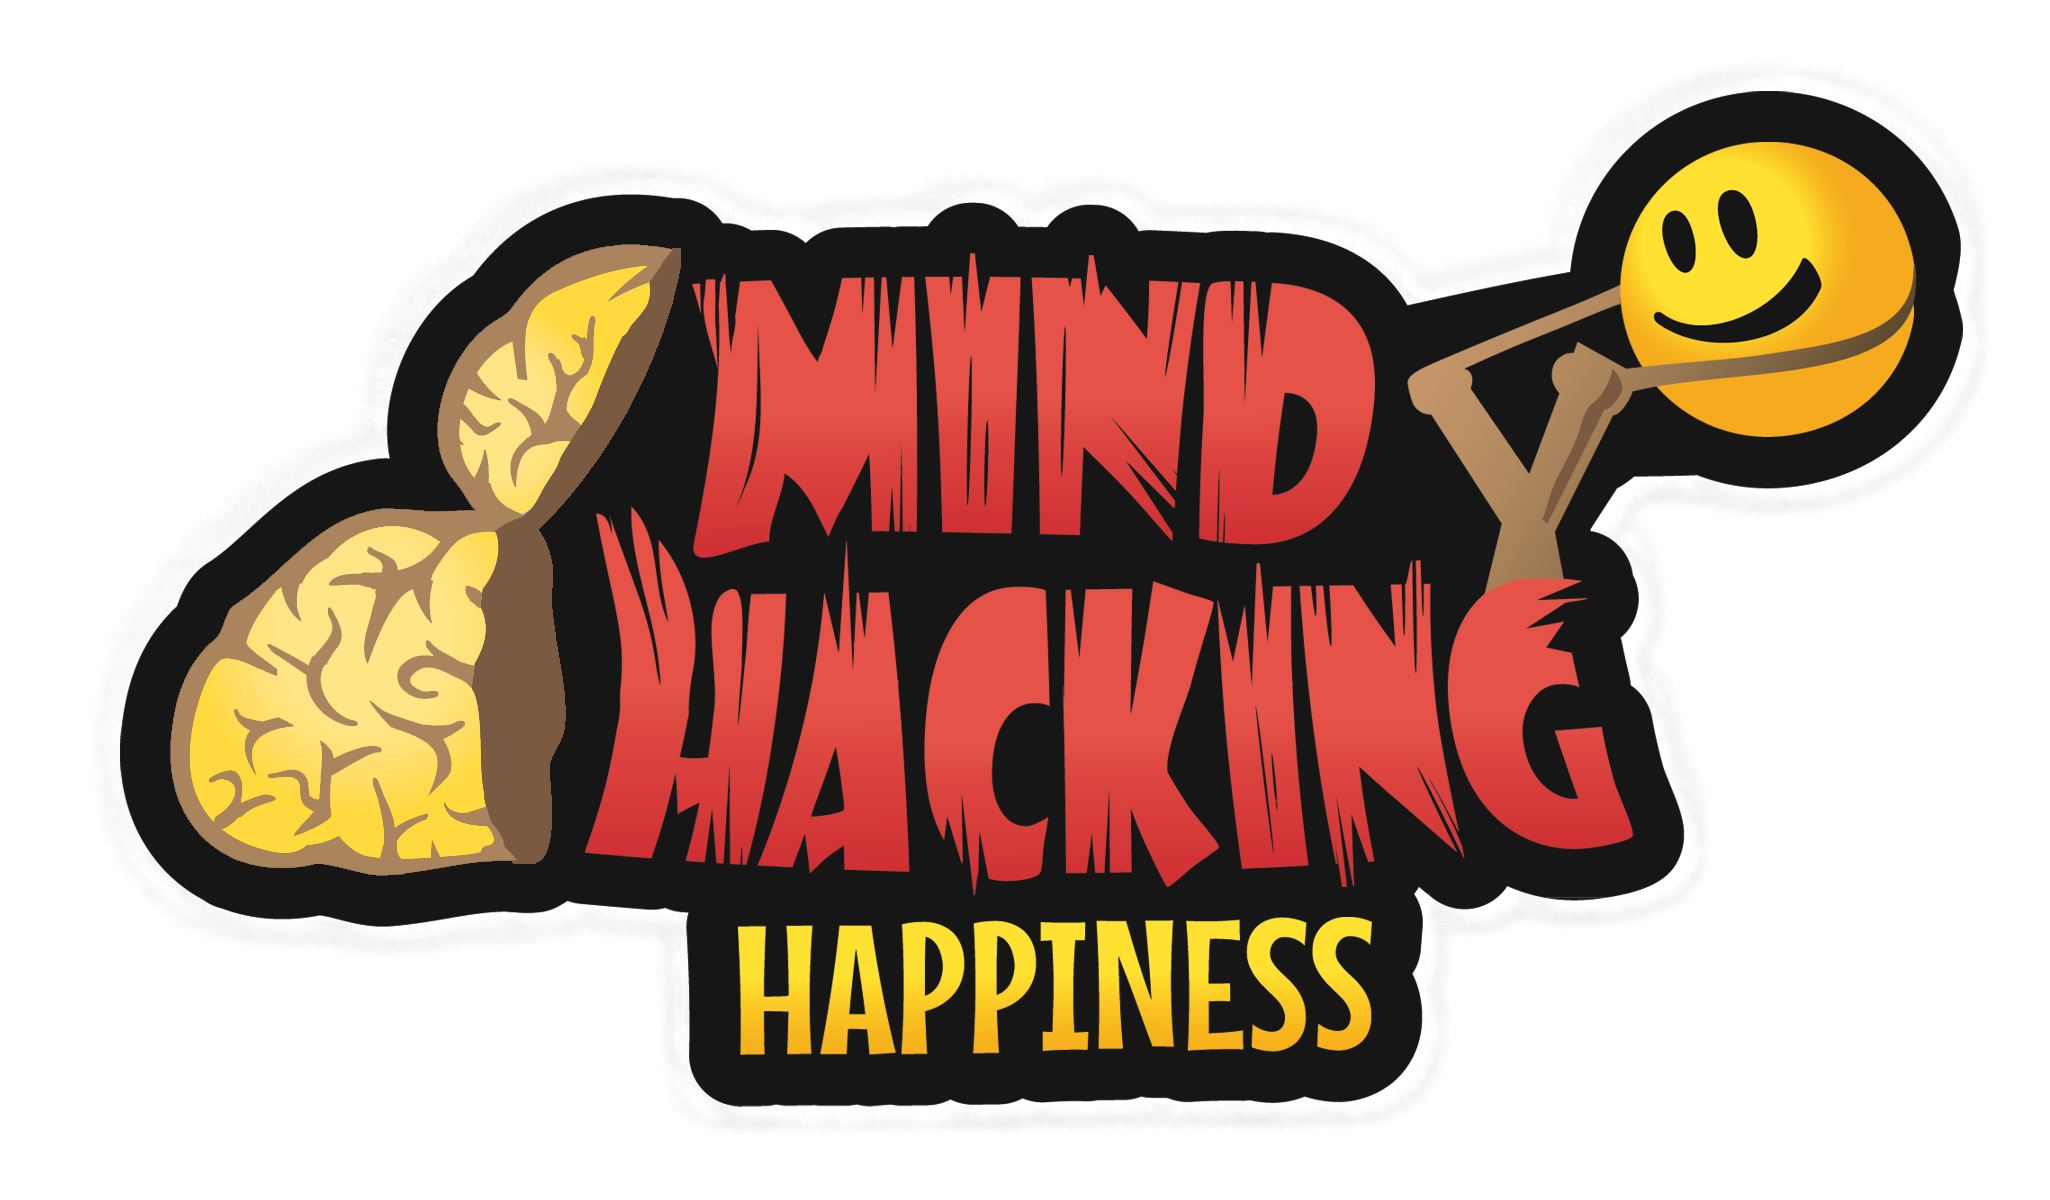 Mind Hacking Happiness